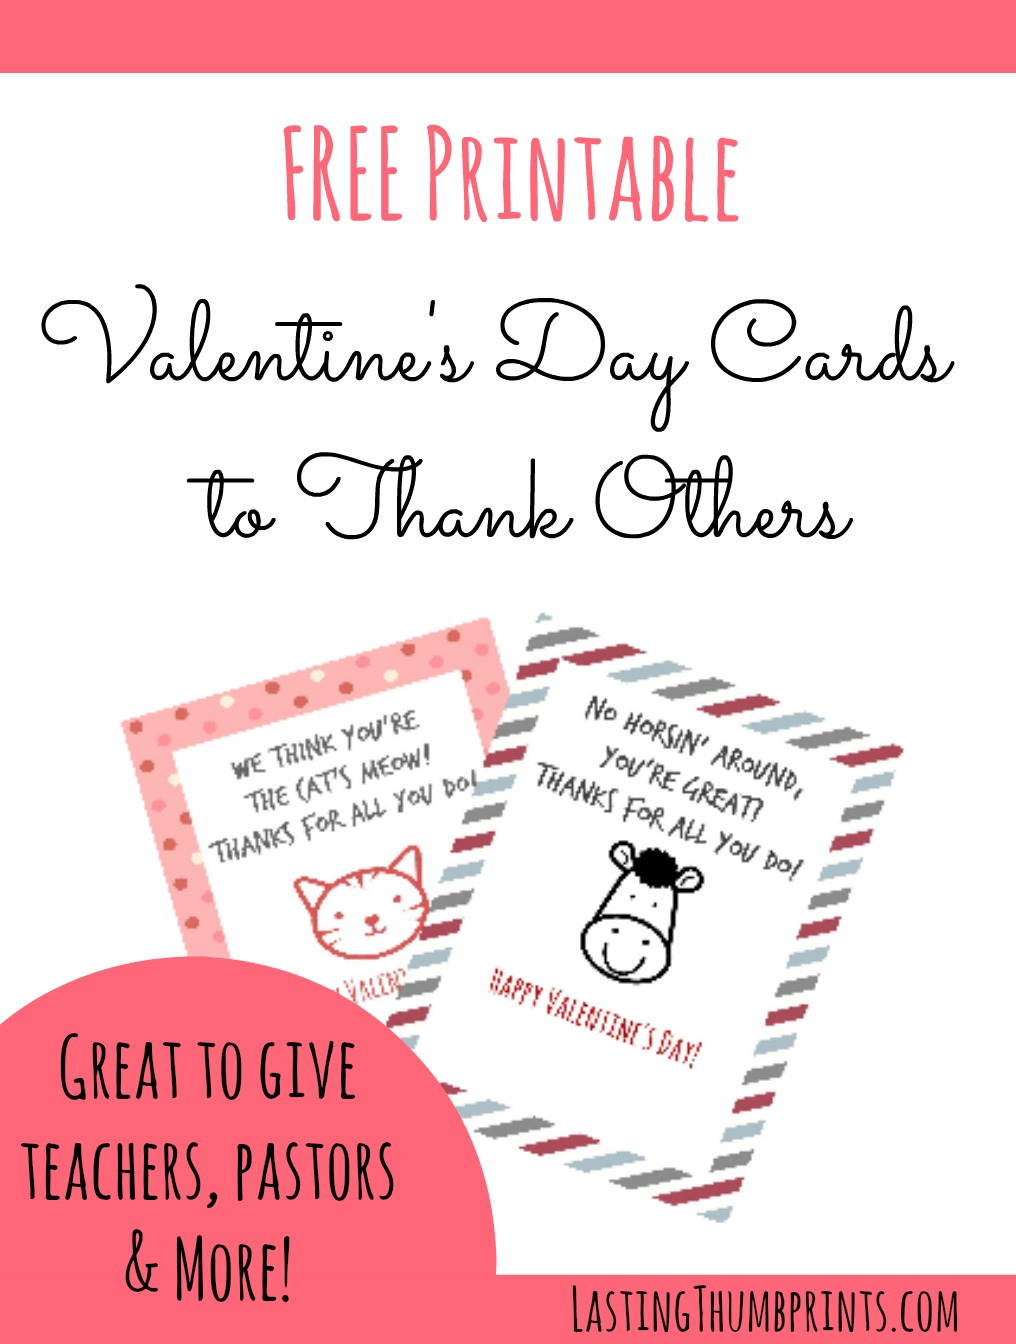 Free Valentines Day Cards to Thank Others – Free Valentine Printable Cards